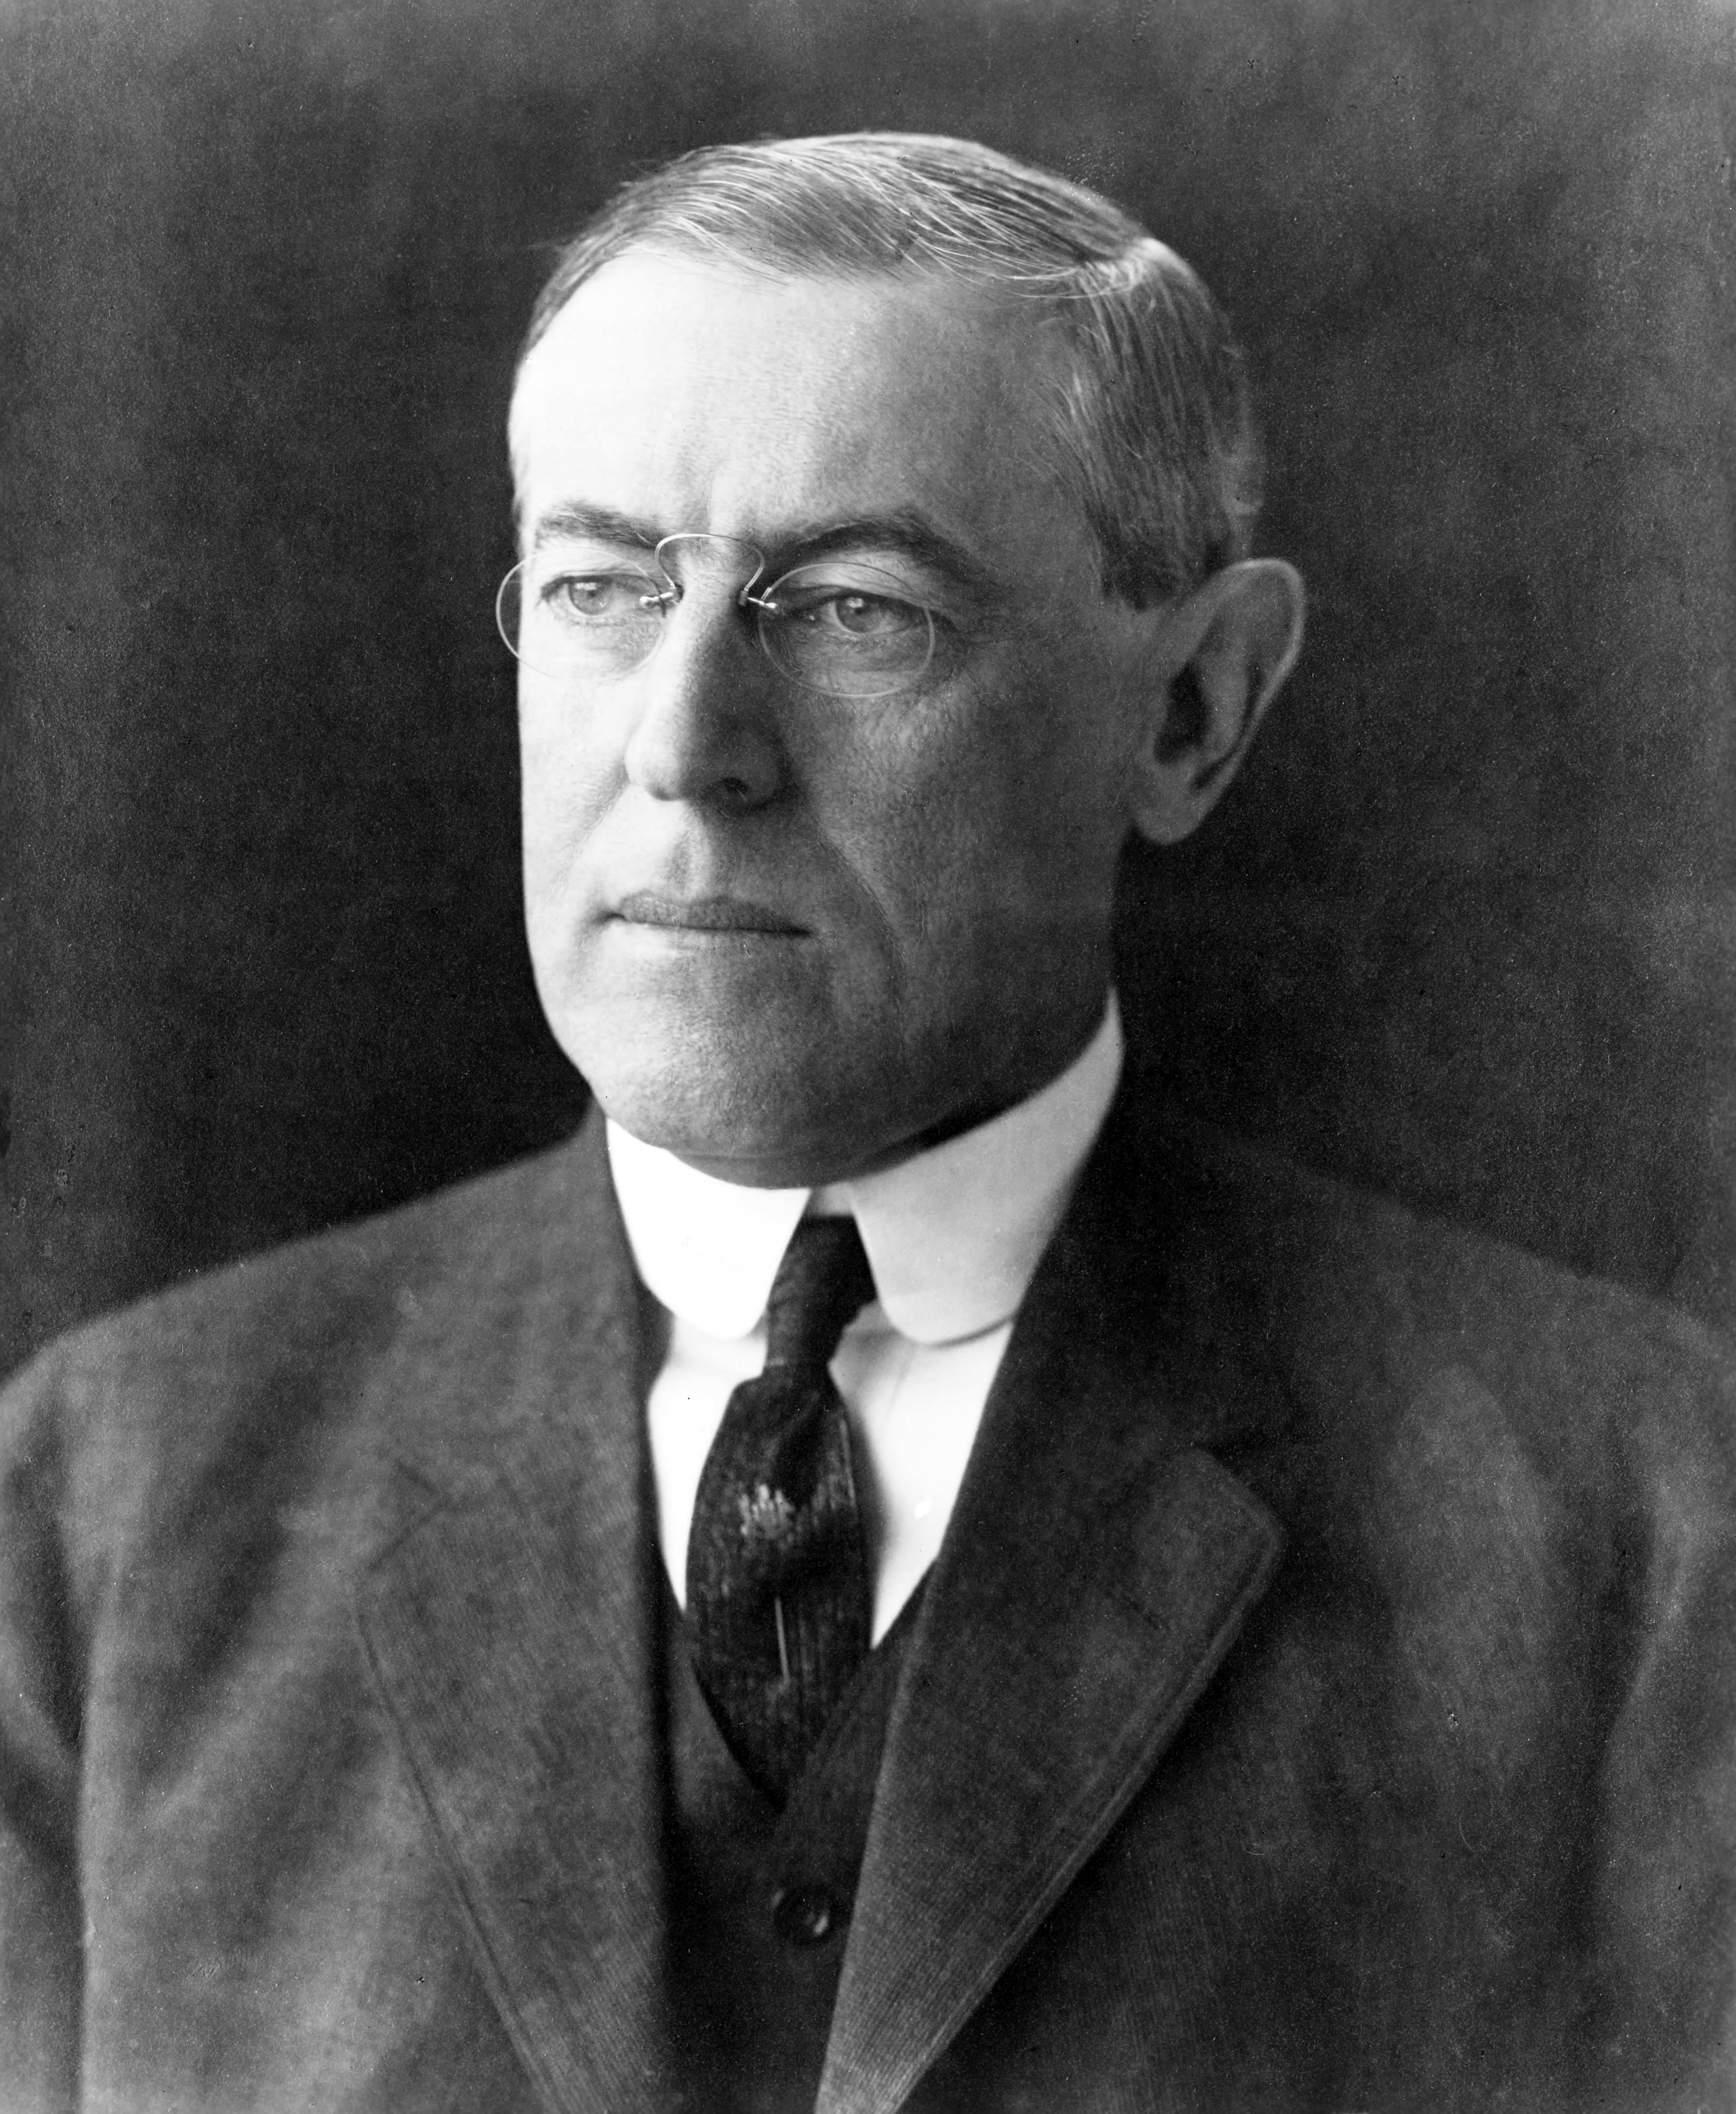 Woodrow Wilson. Source: U.S. Library of Congress